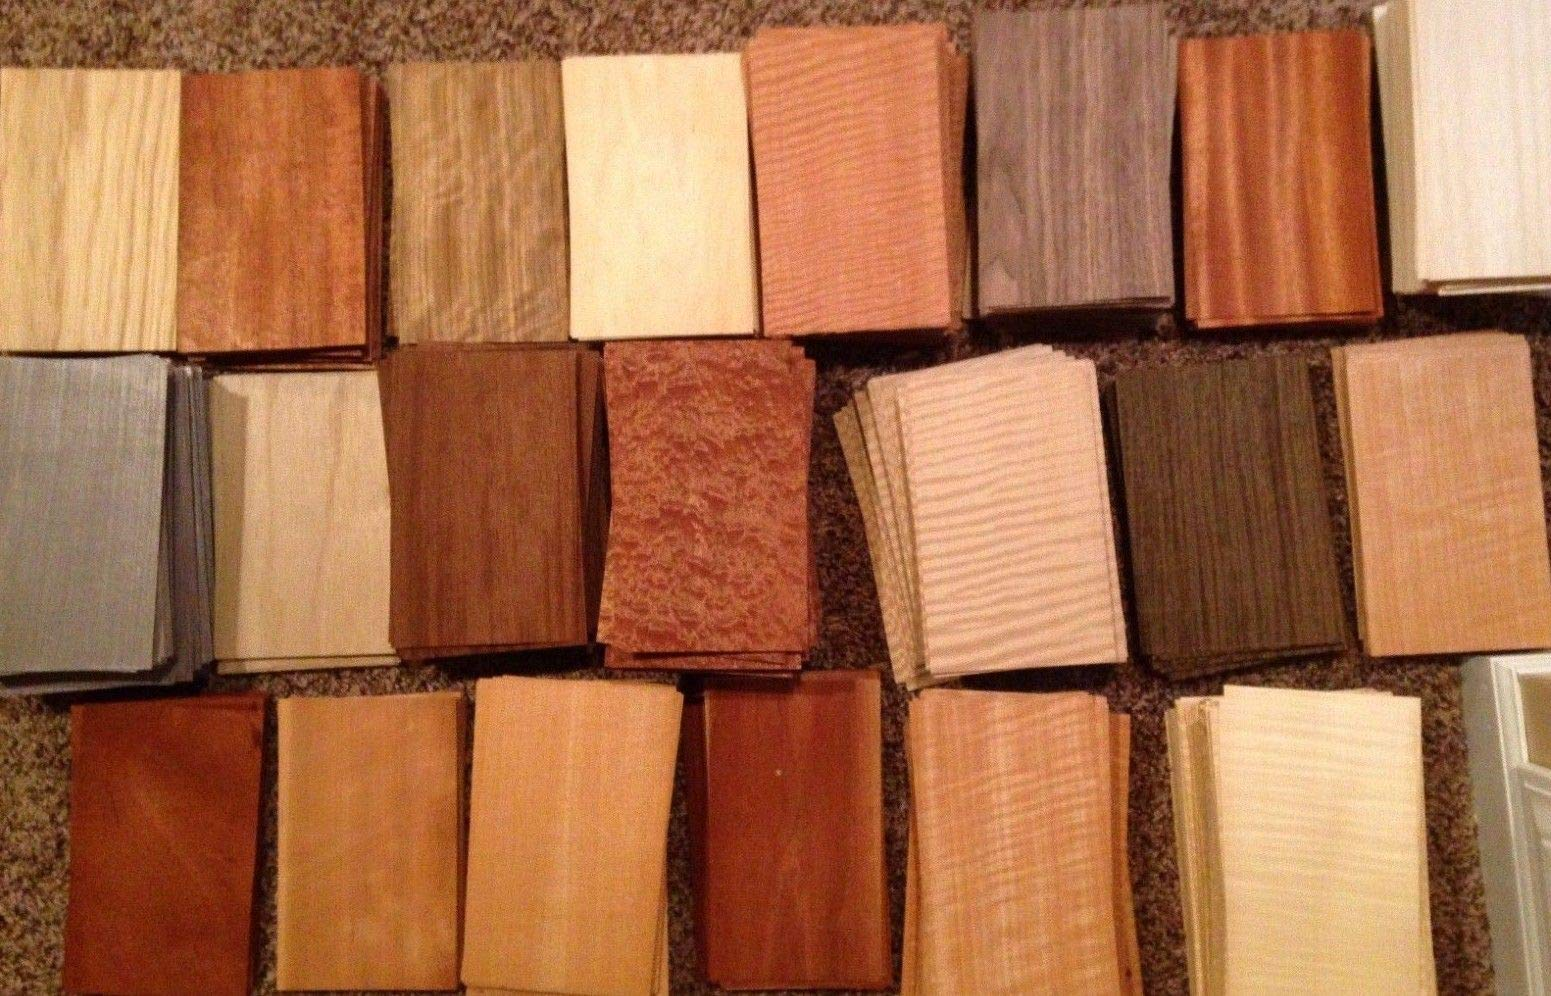 Wood Veneer Variety Pack Domestic Exotic 65 Pieces Arts Crafts Fingerboard Marquetry by Generic